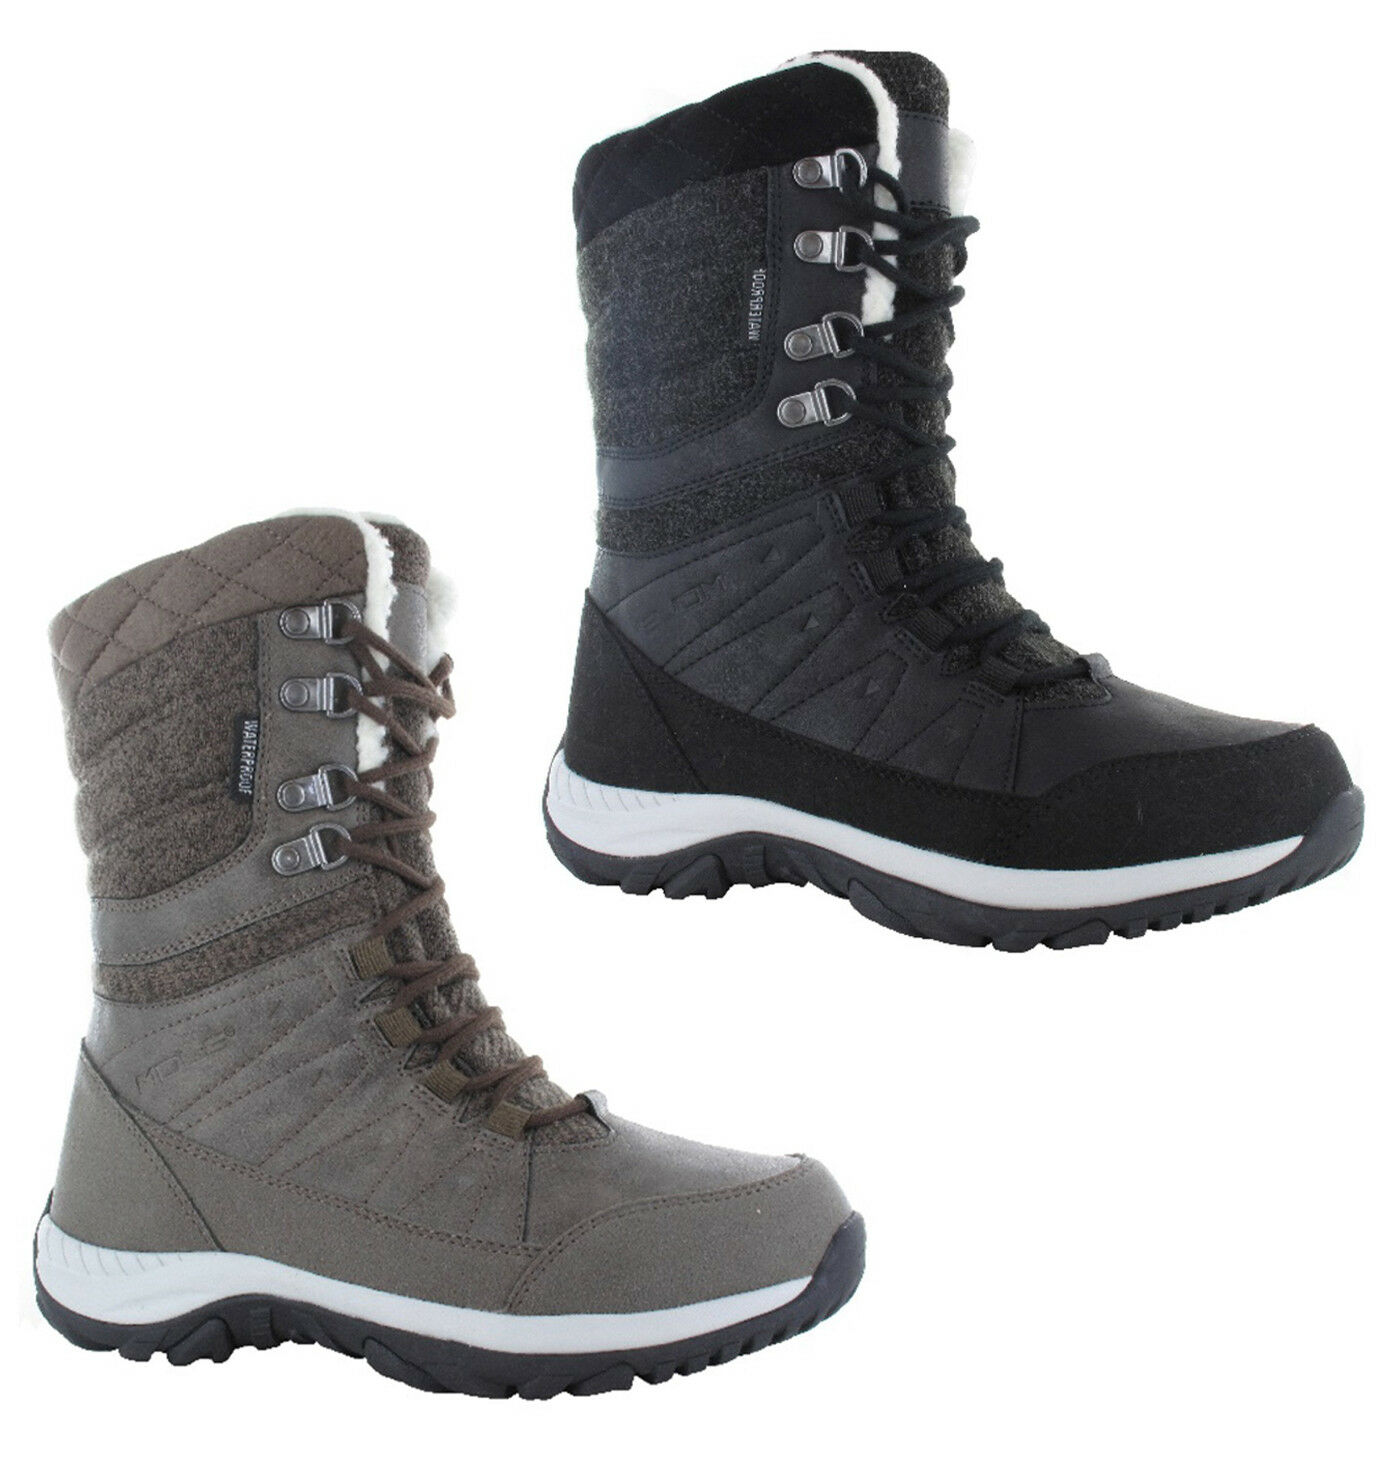 Hi-Tec Riva Waterproof Womens Walking Hiking Boots UK4-8